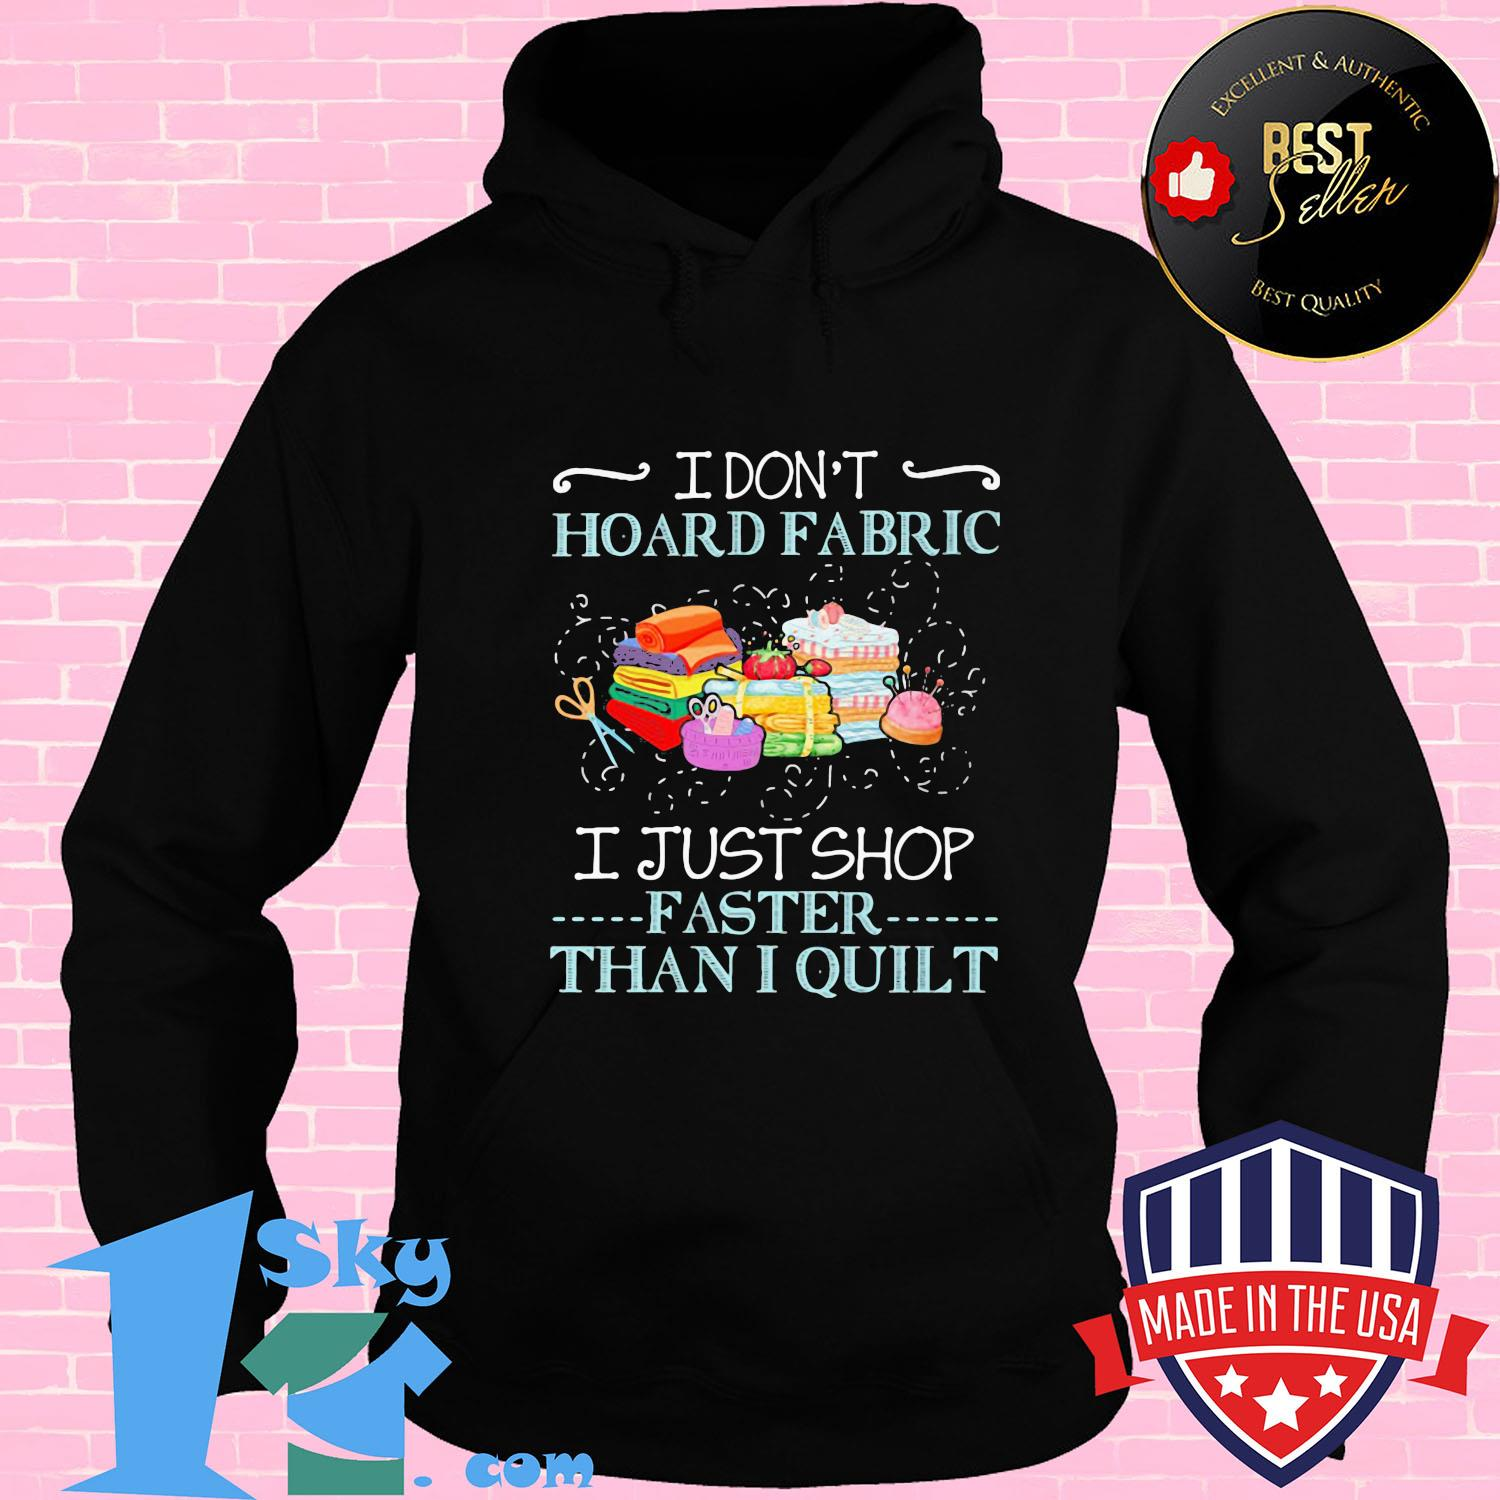 I don't hoaed fabric I just shop faster than I quilt shirt